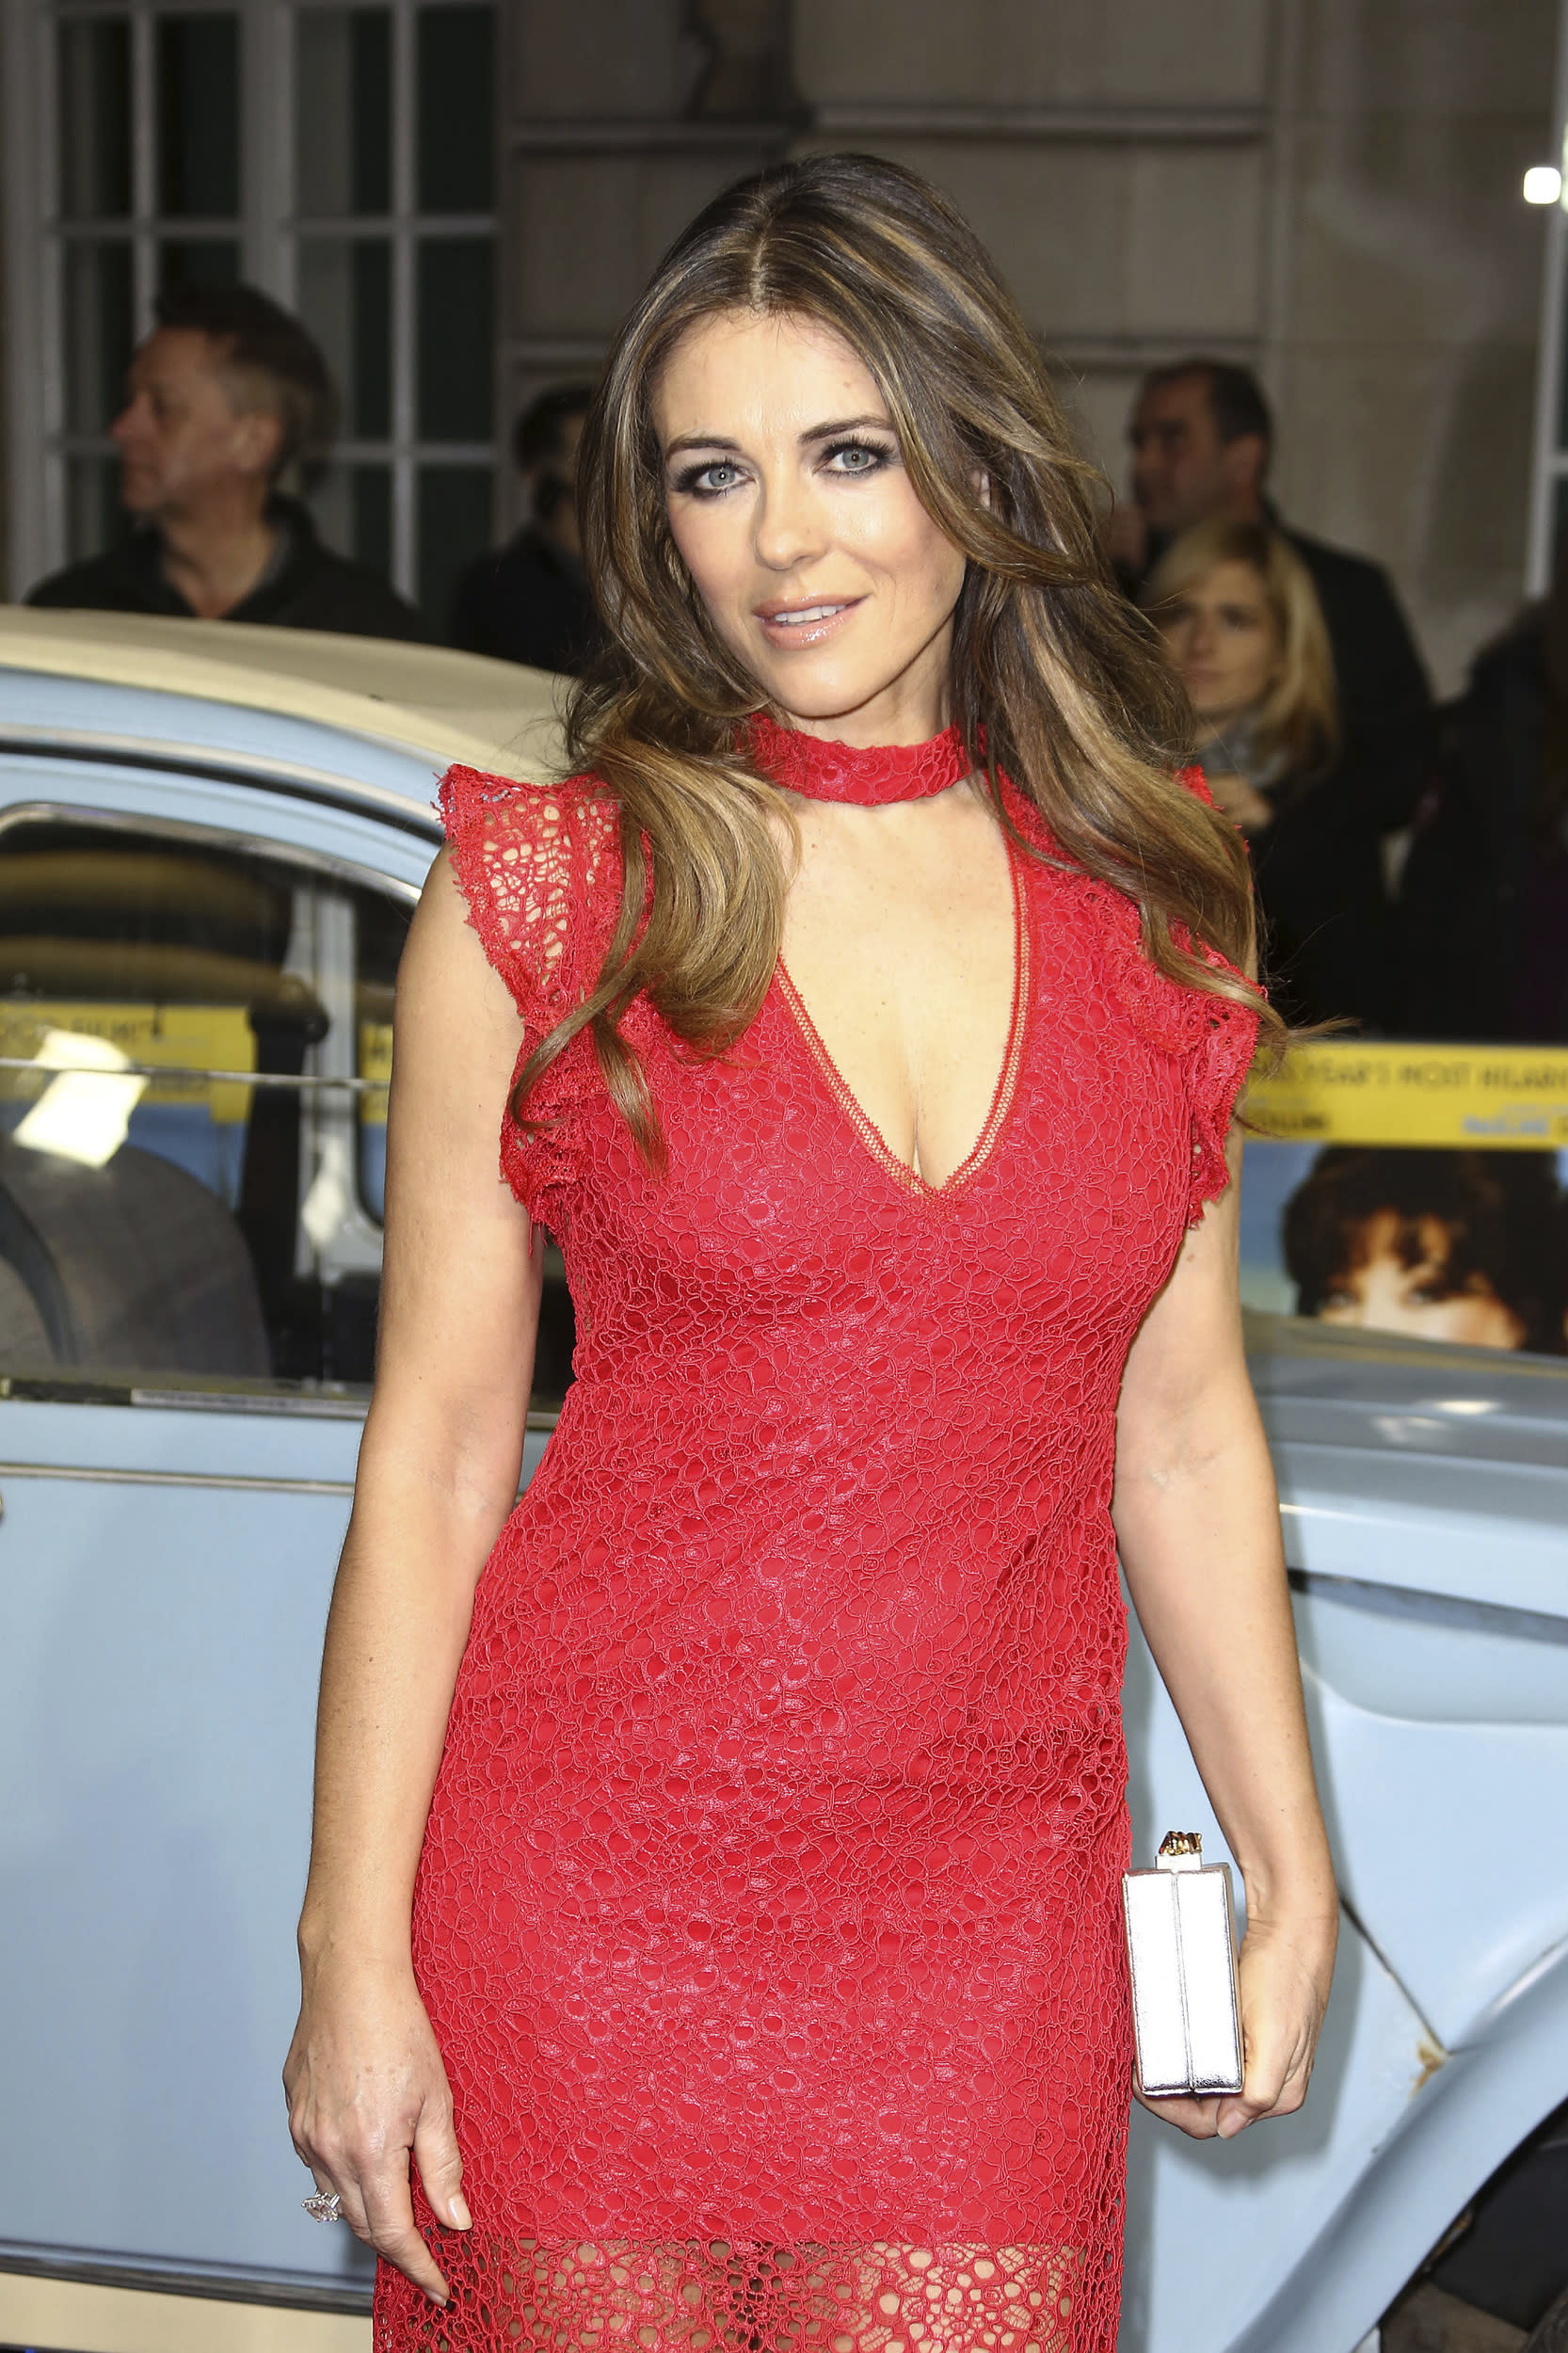 Elizabeth Hurley poses for photographers on the red carpet during the premiere for the film 'The Time of Their Lives' at a central London cinema, Wednesday, March 8, 2016. (Photo by Joel Ryan/Invision/AP)